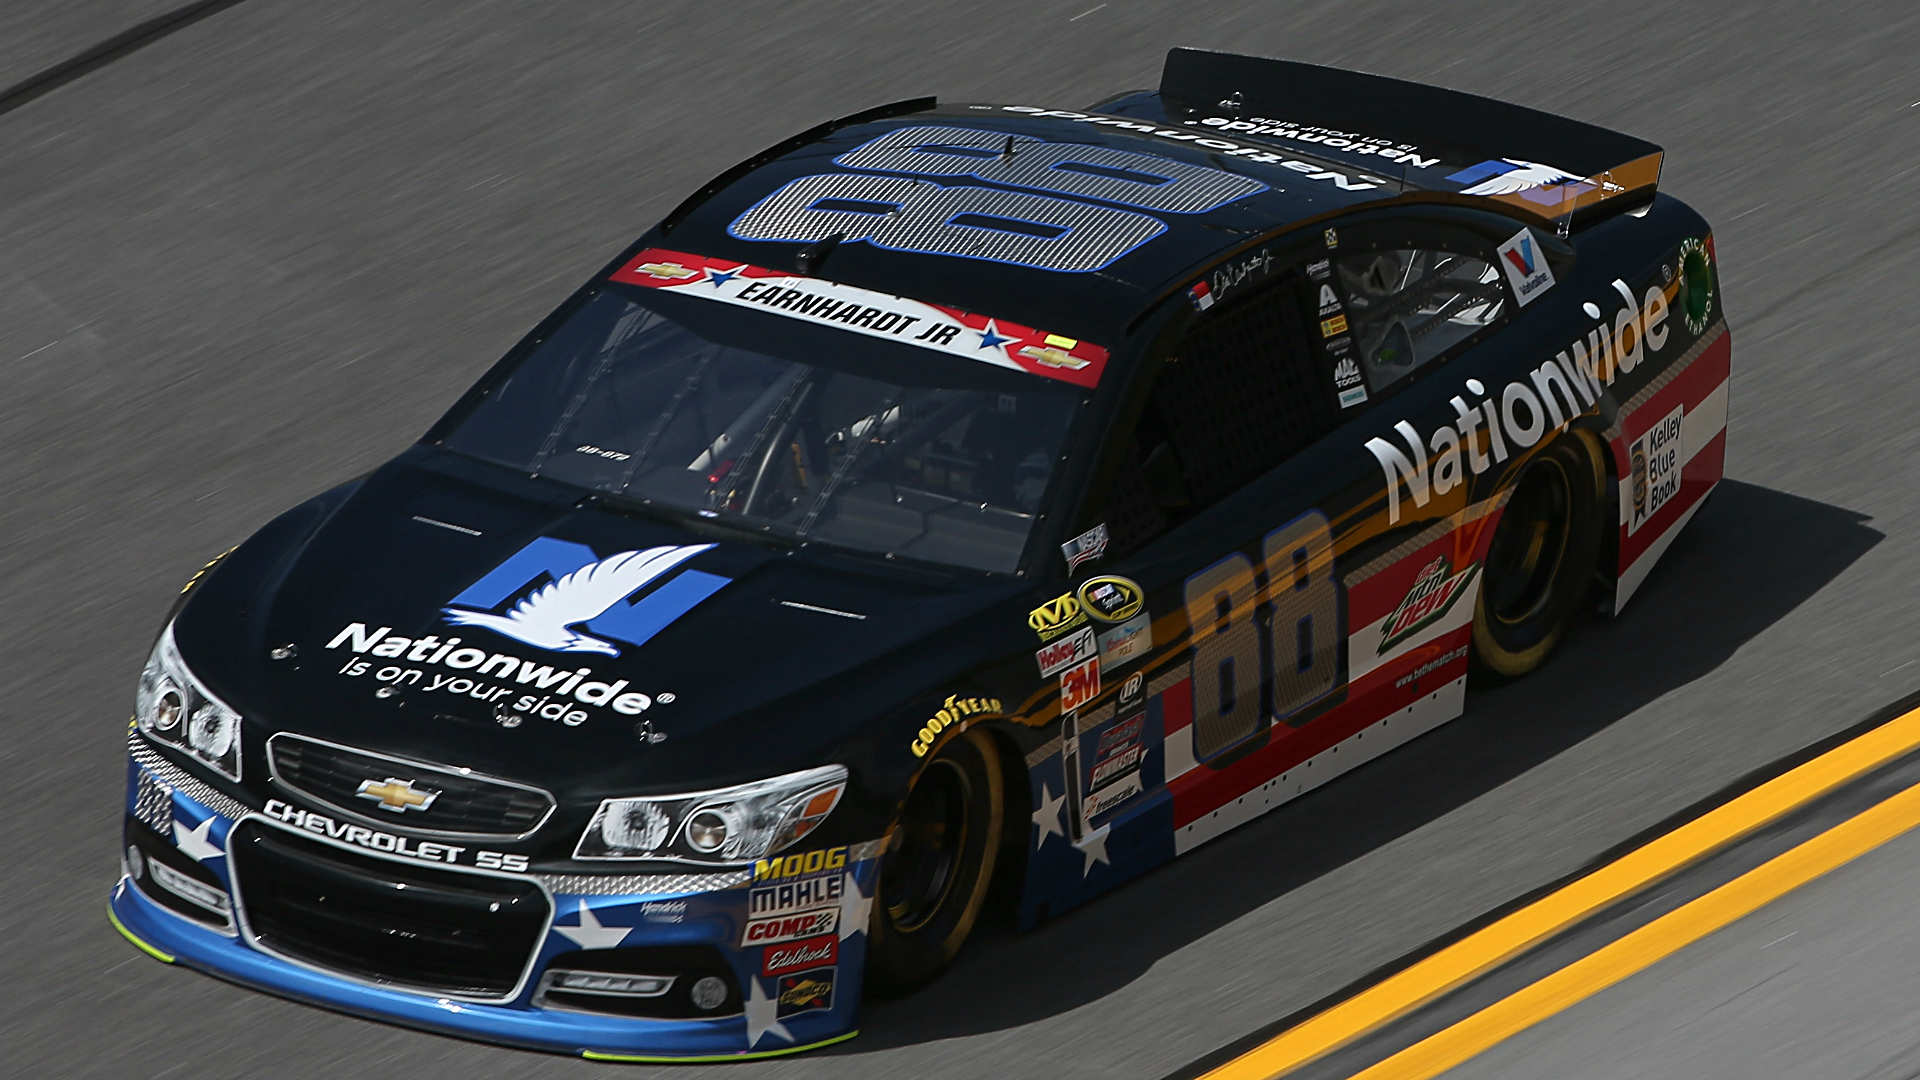 Dale Jr. will start on the pole for the Coke Zero 400